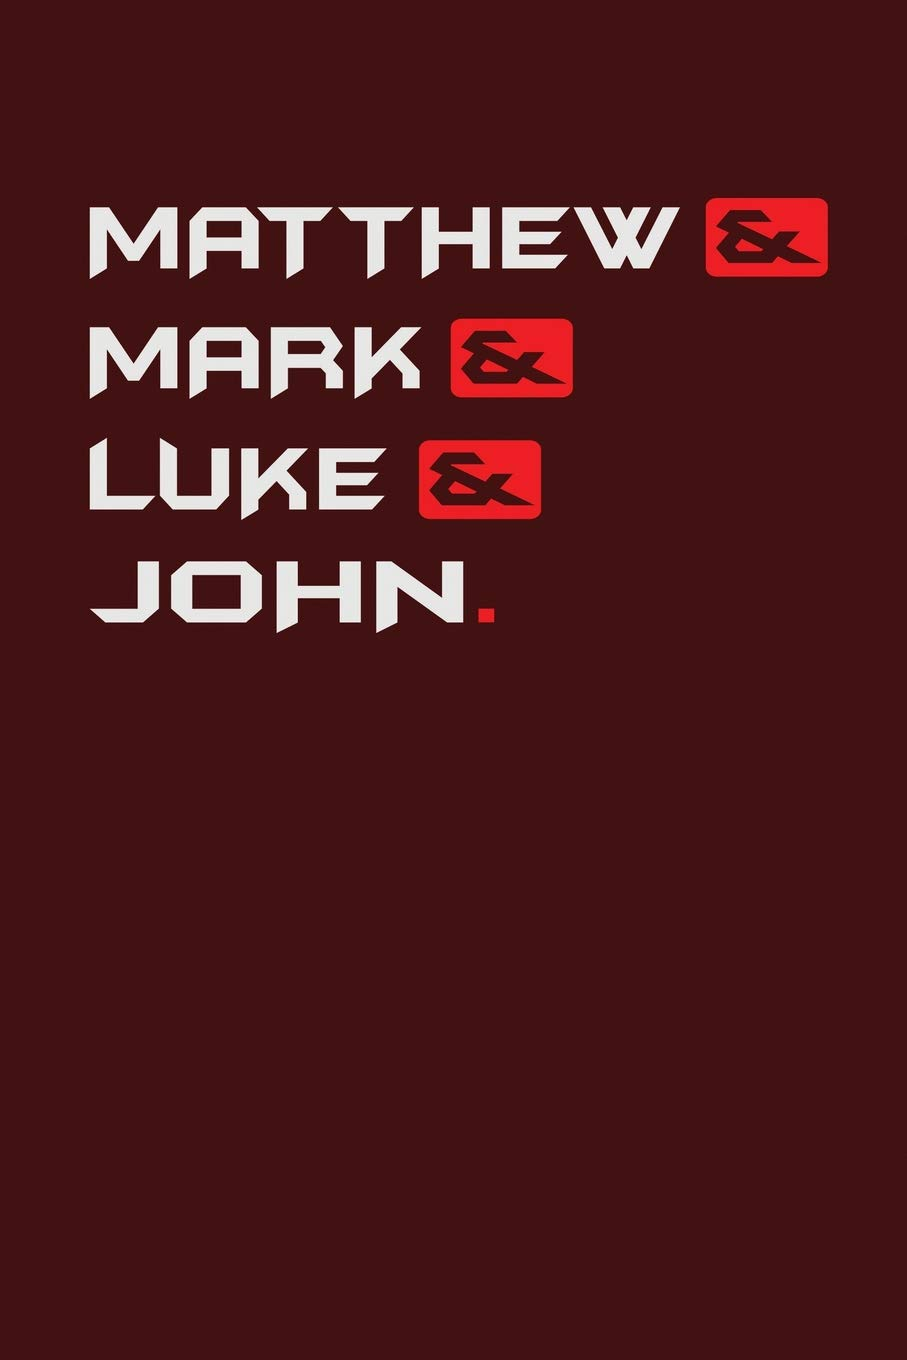 Download Matthew& Mark& Luke& John.: Dark Red, White & Red Design, Blank College Ruled Line Paper. Notebook For Christian Girls and Their Families. Journal for ... Book: Journal Diary For Writing and Notes) PDF